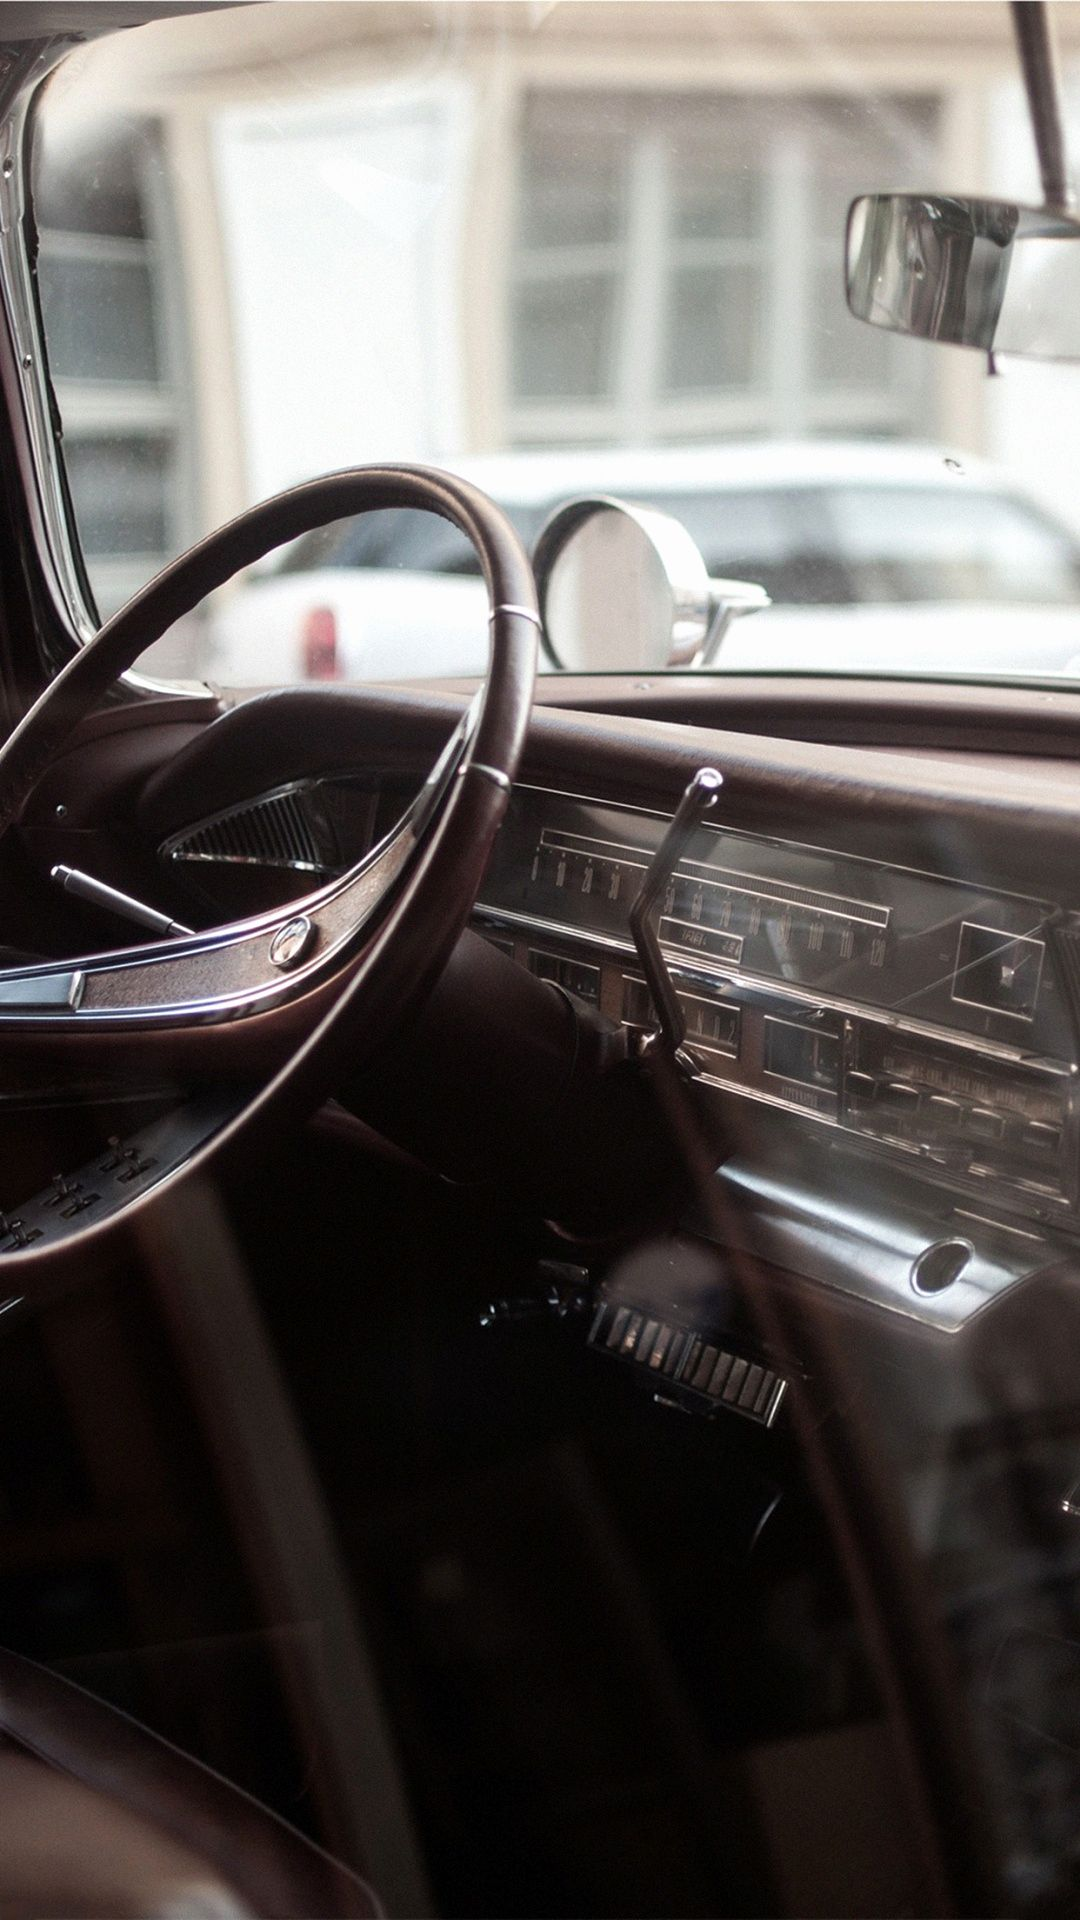 Https All Images Net Iphone 6 Classic Car Wallpaper Genuine Vintage Car Dash Wallpaper Iphone Christmas Iphone Wallpaper Photography Iphone Wallpaper Vintage